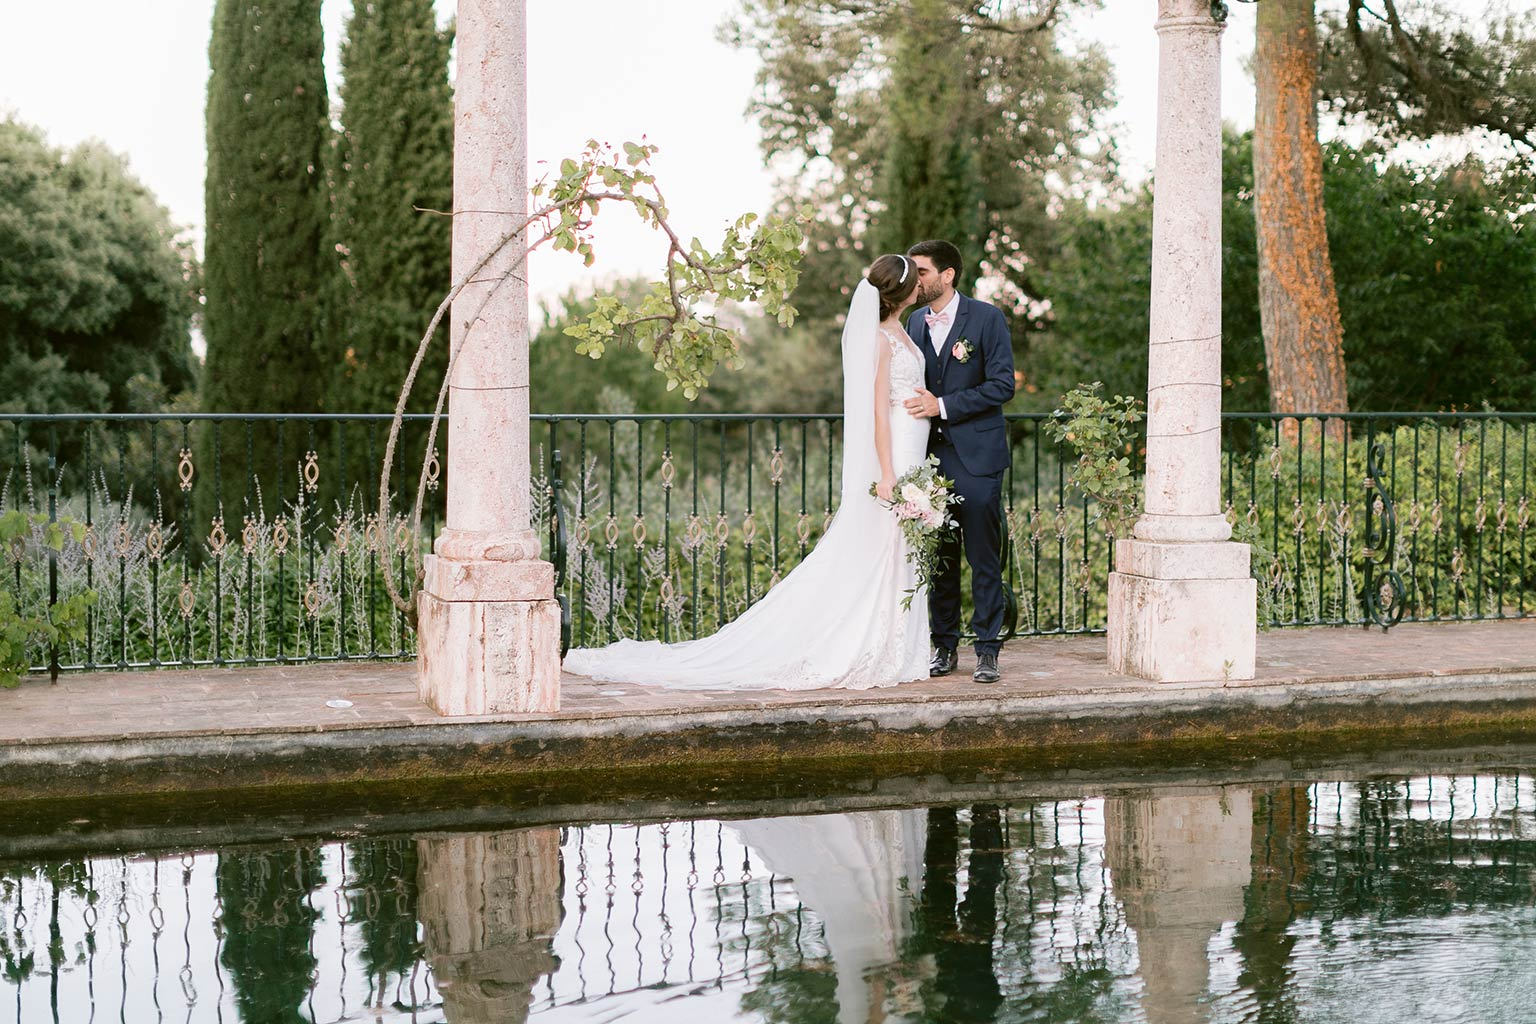 Couple photo shoot - Destination wedding between the French Riviera and Provence